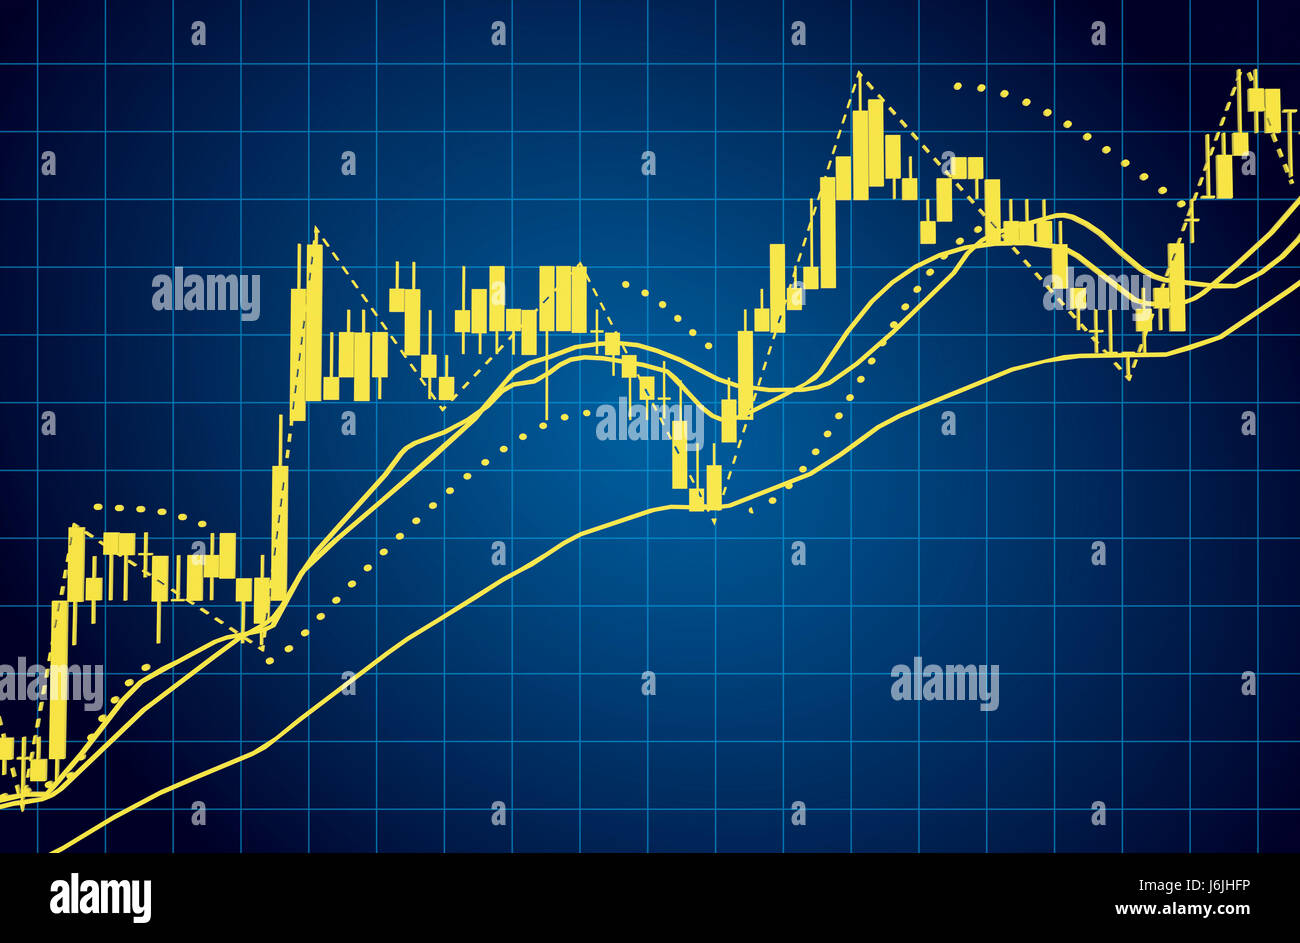 Stock index forex